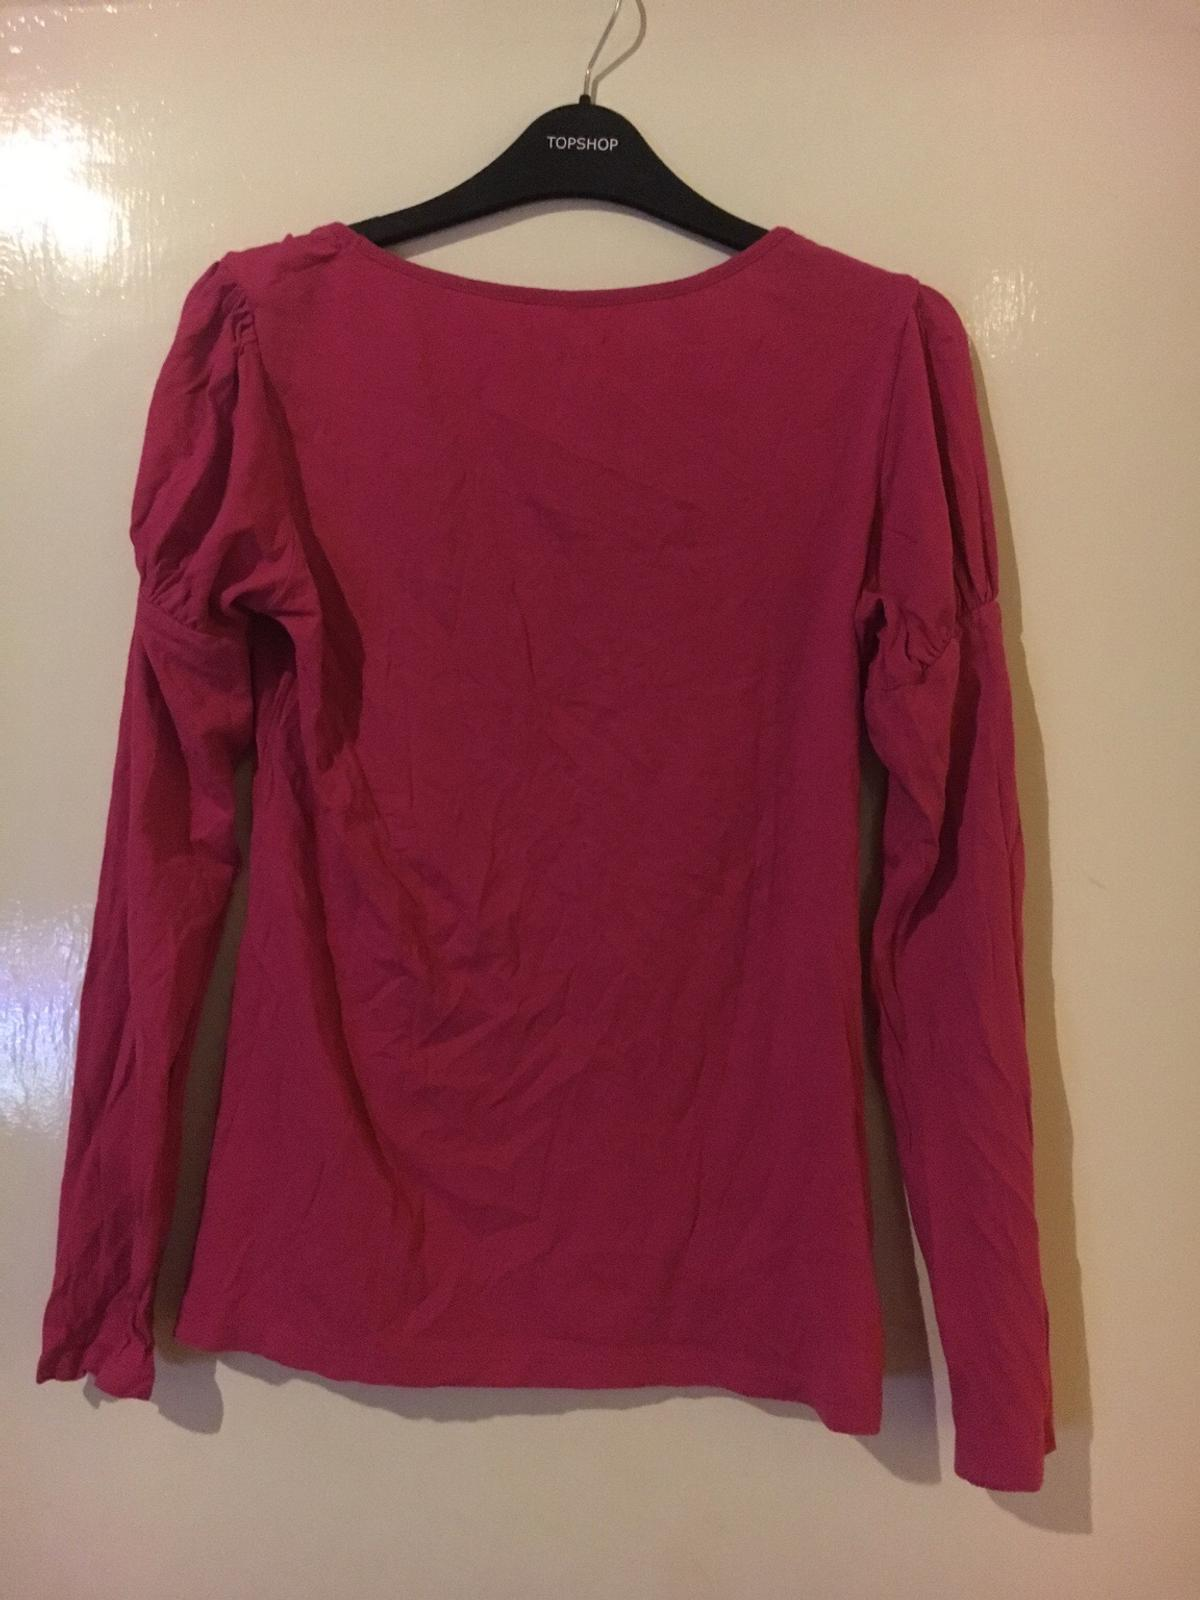 048fb436e8fa6a Ladies bright pink top size 14 in L22 Waterloo for £0.75 for sale ...